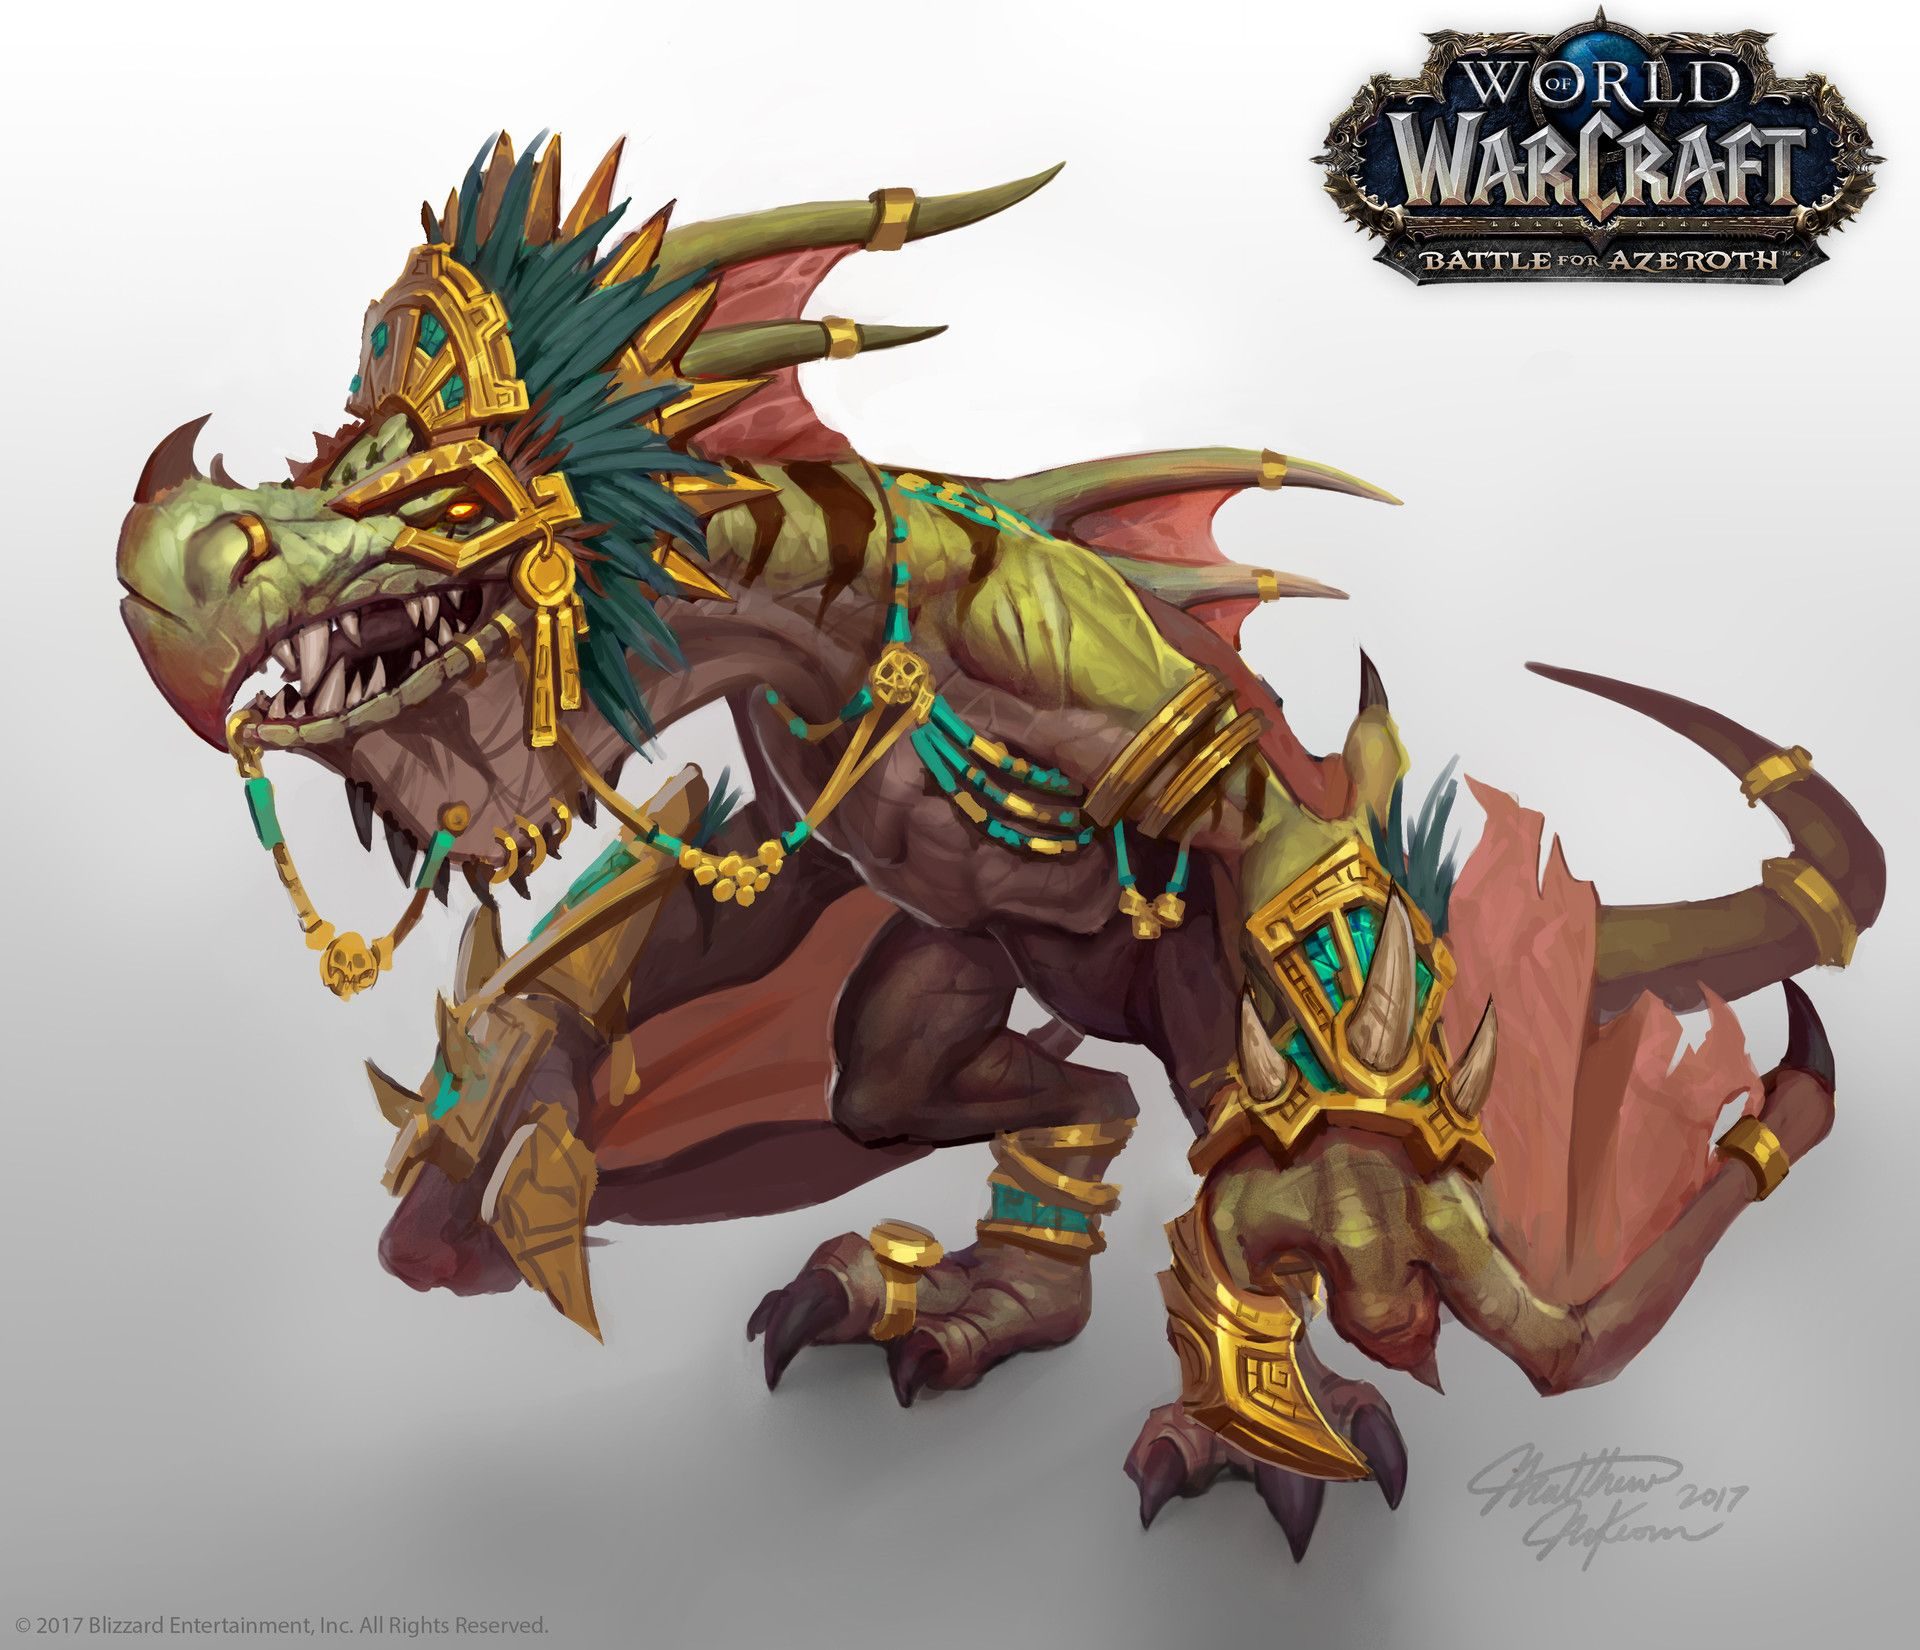 Concept Art Of Pa Ku The Pterrordax Loa Shown At Blizzcon 2017 And On The Battle For Azeroth Artwork Page Here Htt World Of Warcraft Warcraft Warcraft Art